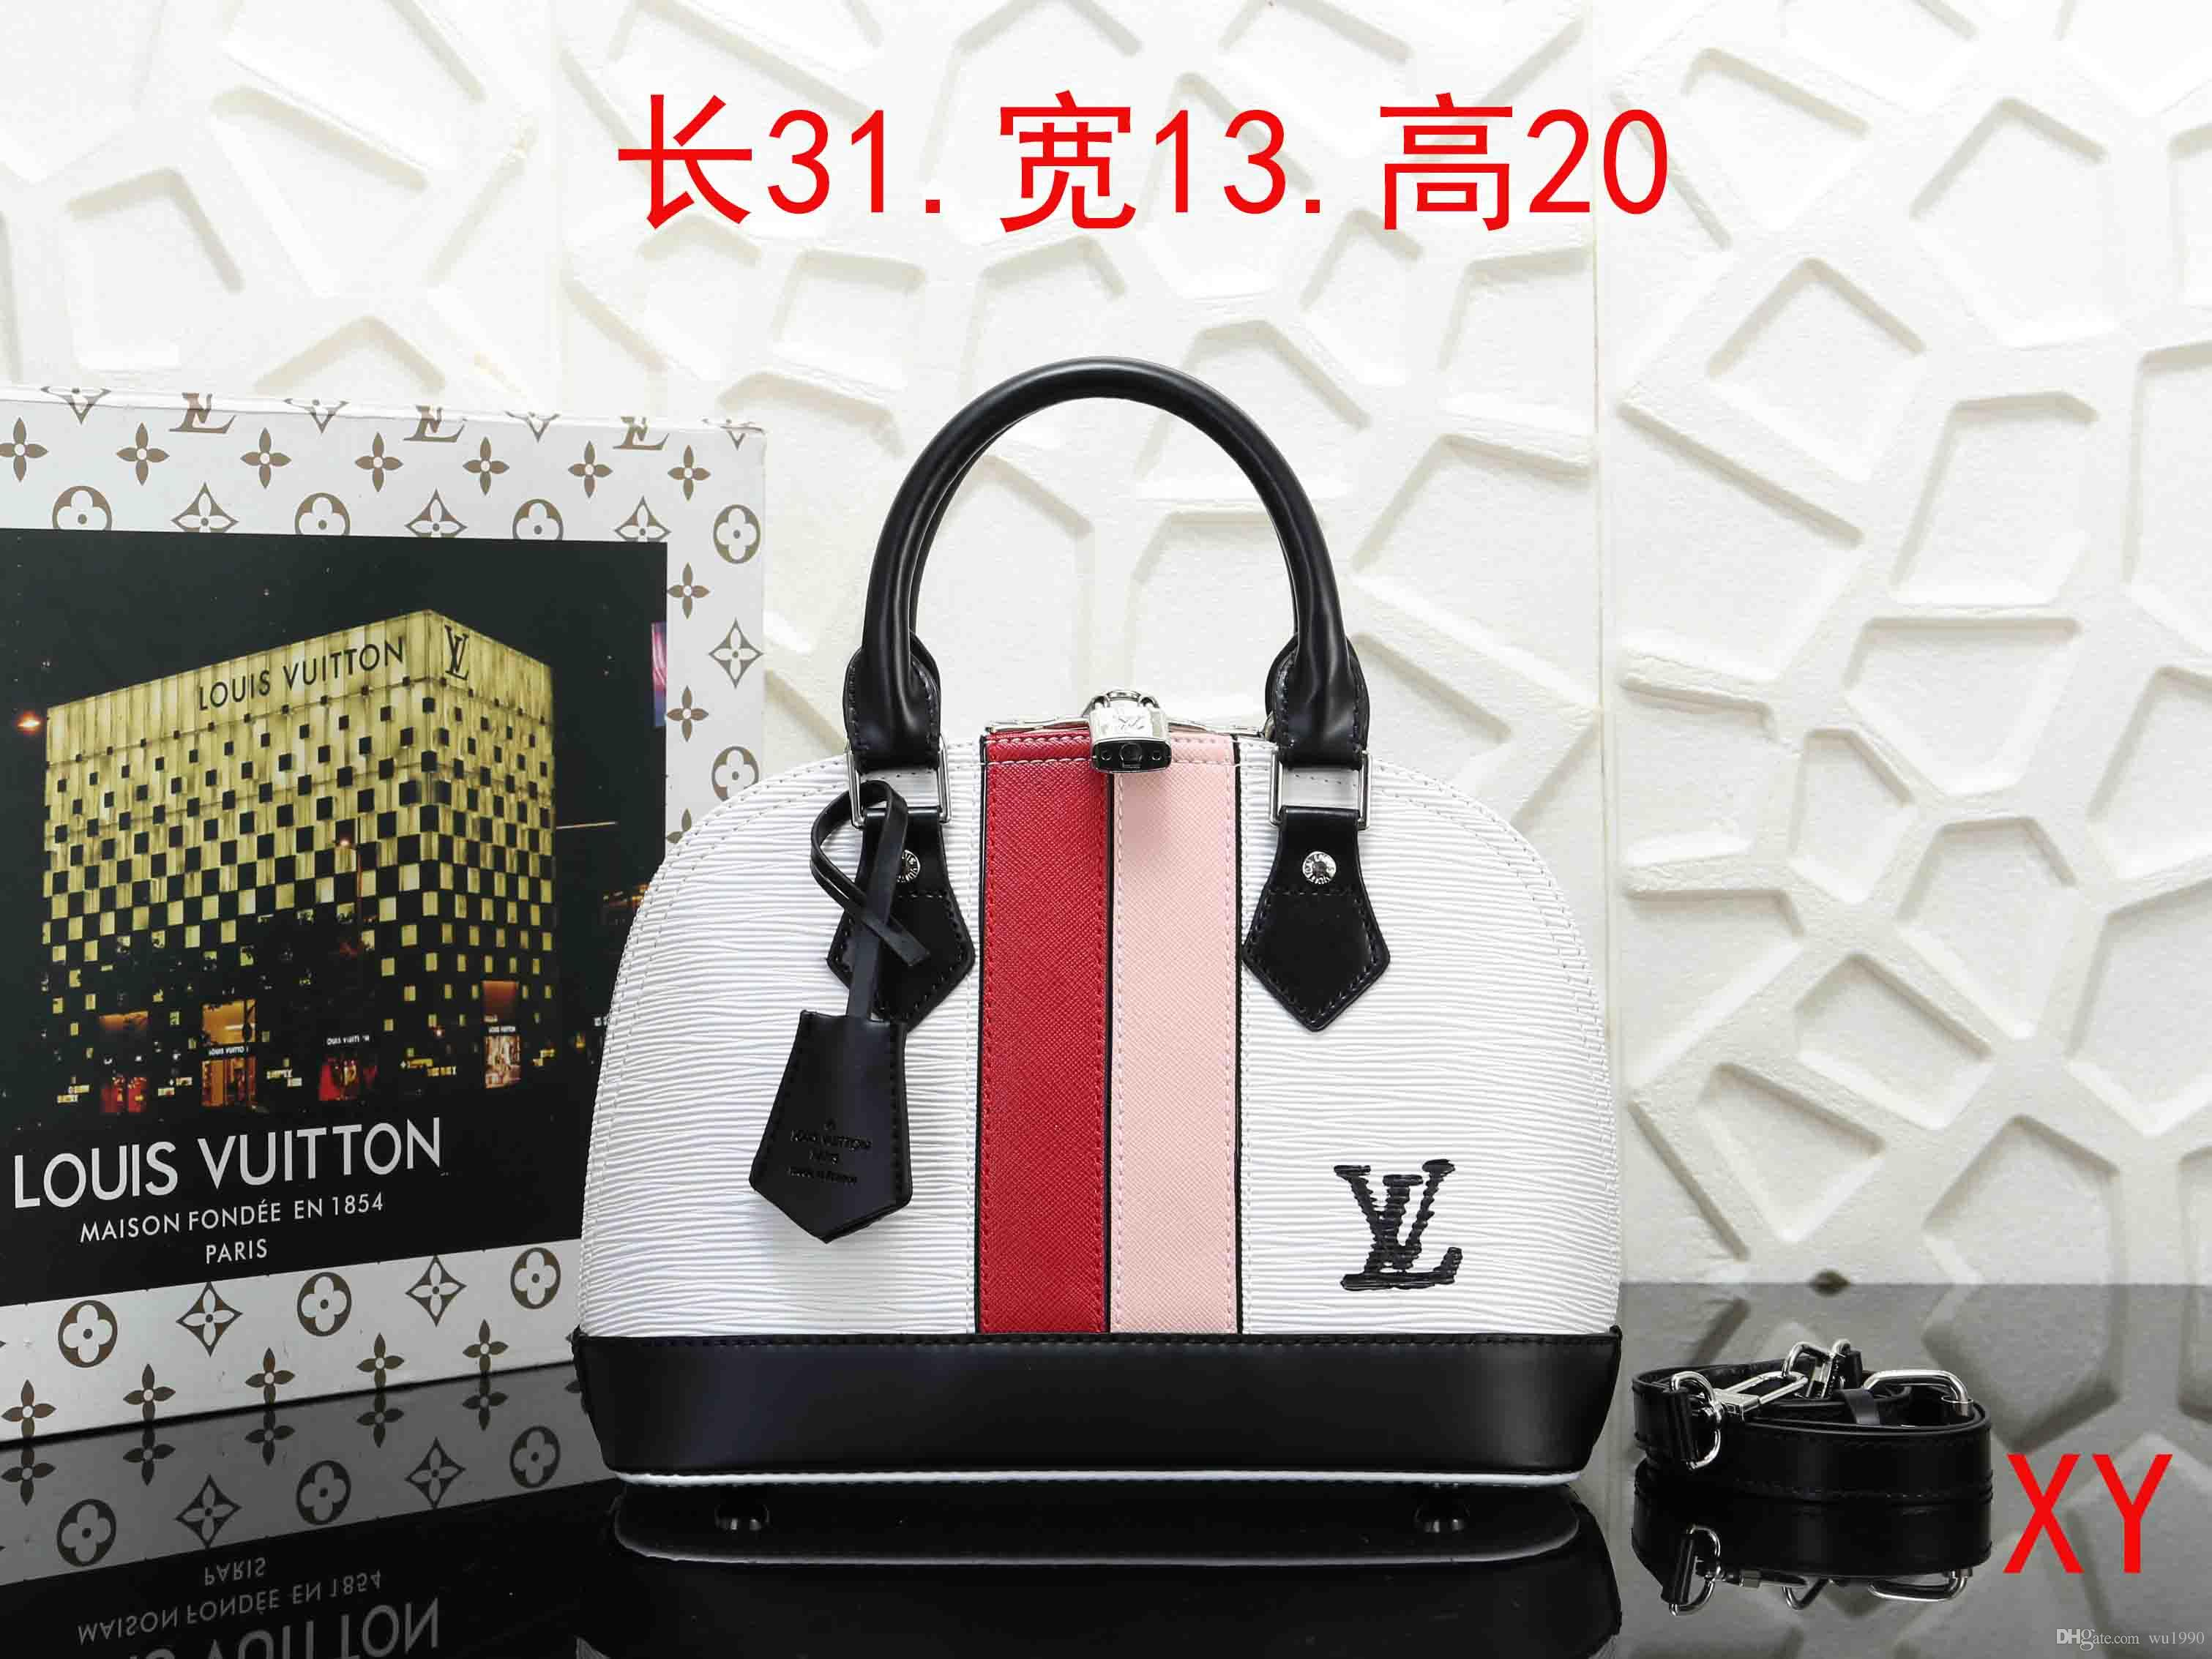 AAAAAAA++++++ Fashion Vintage Handbags Women Bags Designer Handbags Wallets  For Women Leather Chain Bag Crossbody And Shoulder Bags Tags 001 Ladies  Handbags ... 1b337e57a60c8